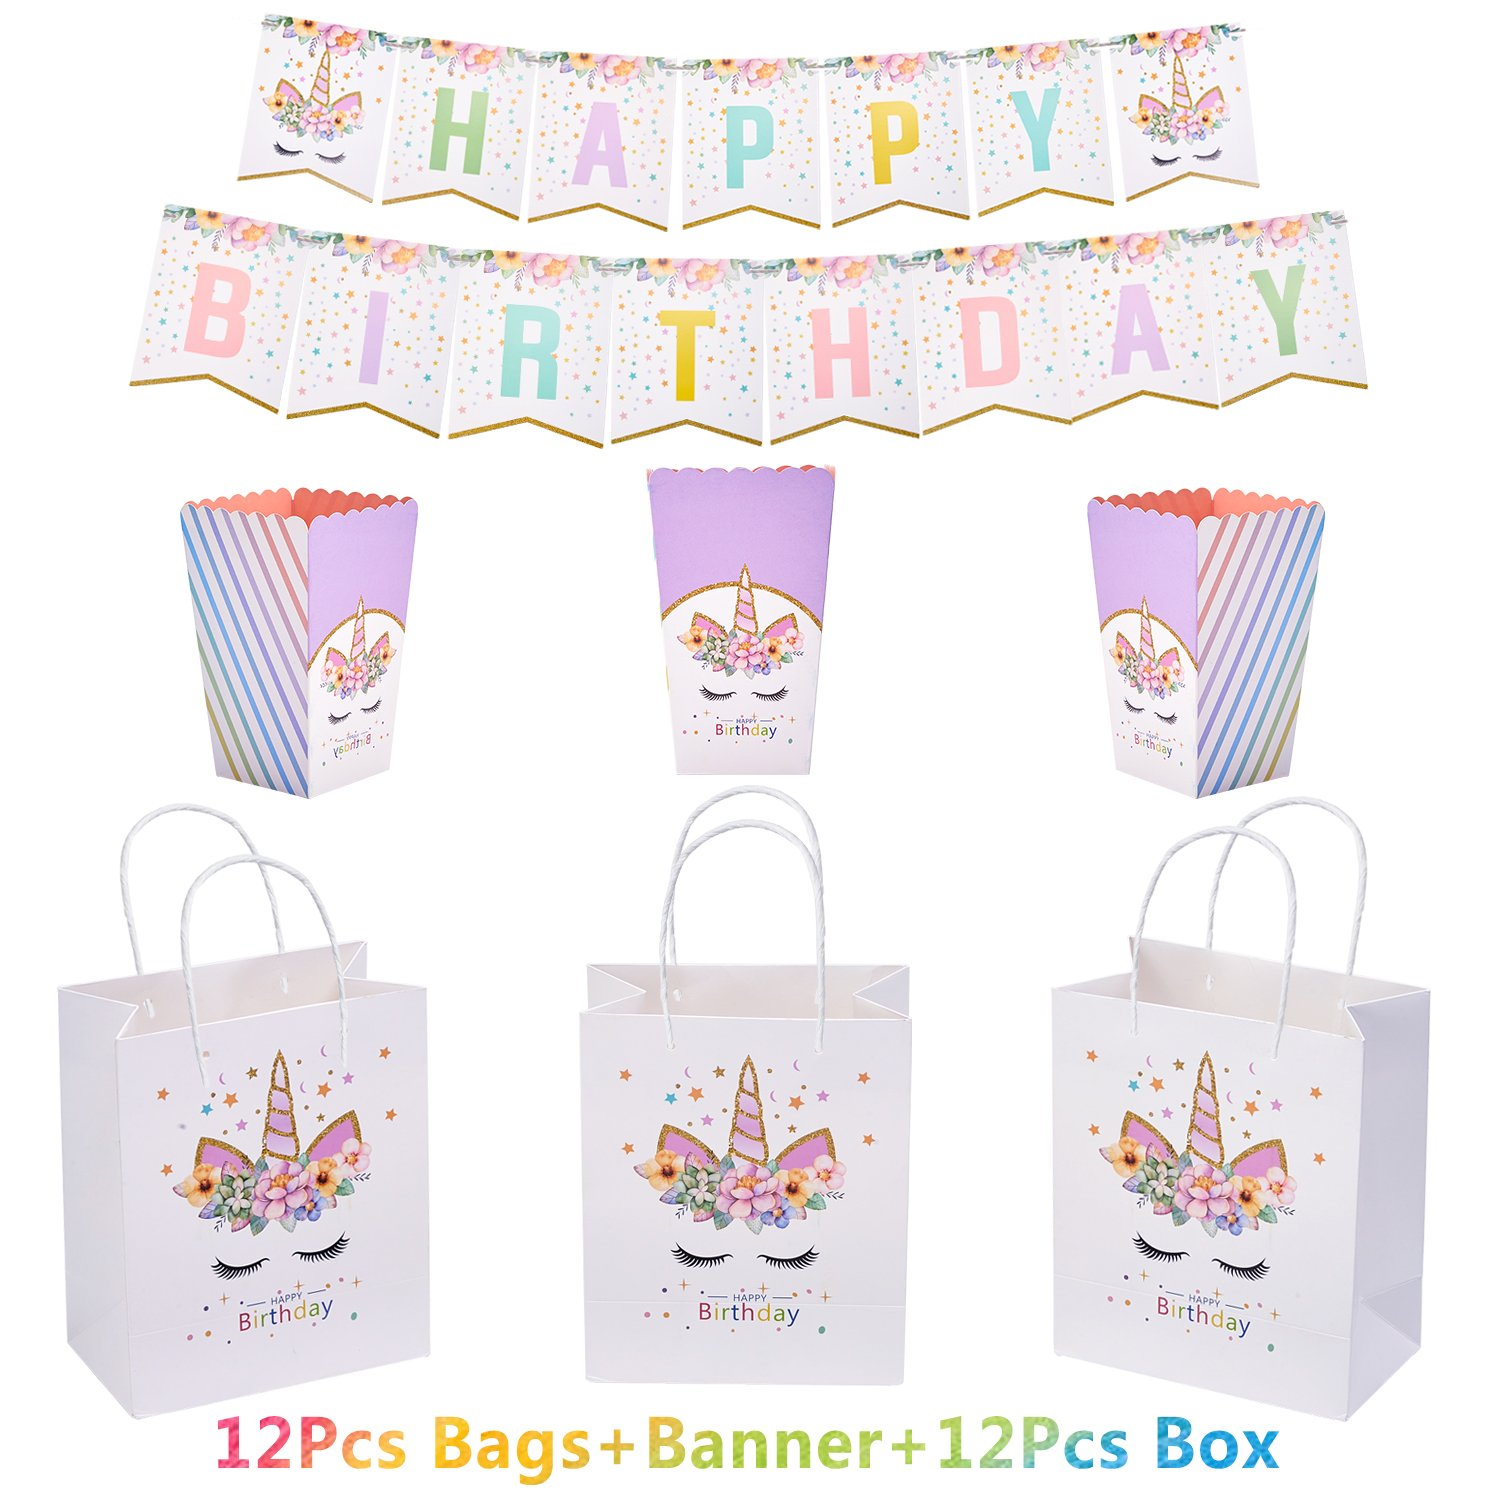 Unicorn Party Supplies 12pcs Unicorn Gift Bags with 12pcs Popcorn Treat Boxes and Happy Birthday Bunting Banner Rainbow Unicorn Themed Party Favors Decorations For Cute Fantasy Birthday Party Supplies